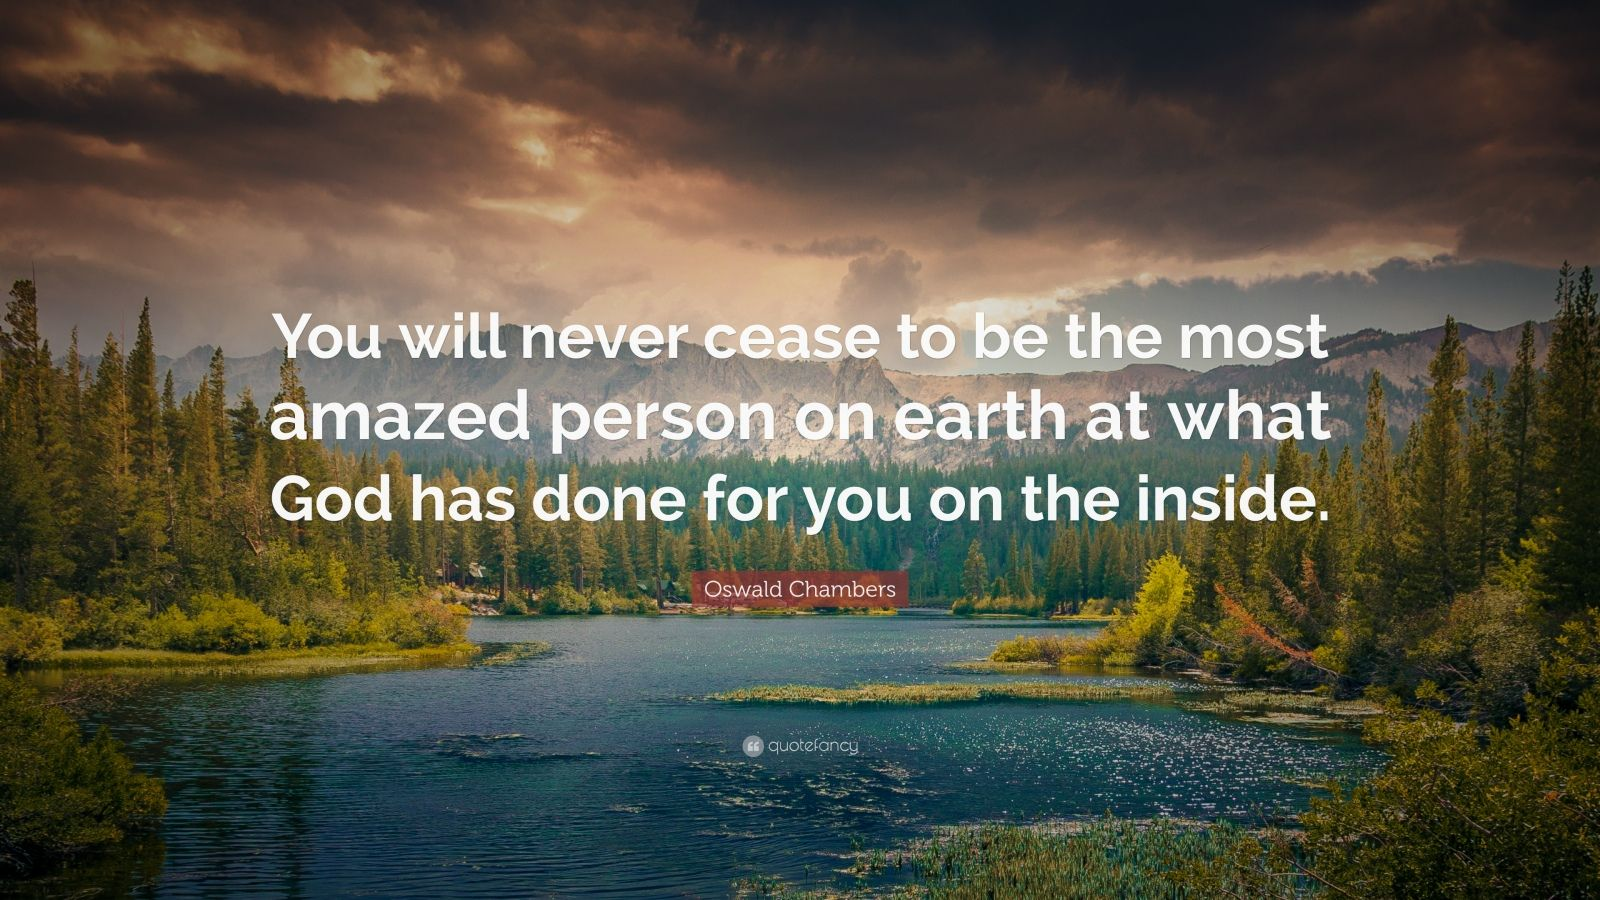 """Oswald Chambers Quote: """"You will never cease to be the most amazed person on earth at what God has done for you on the inside."""""""